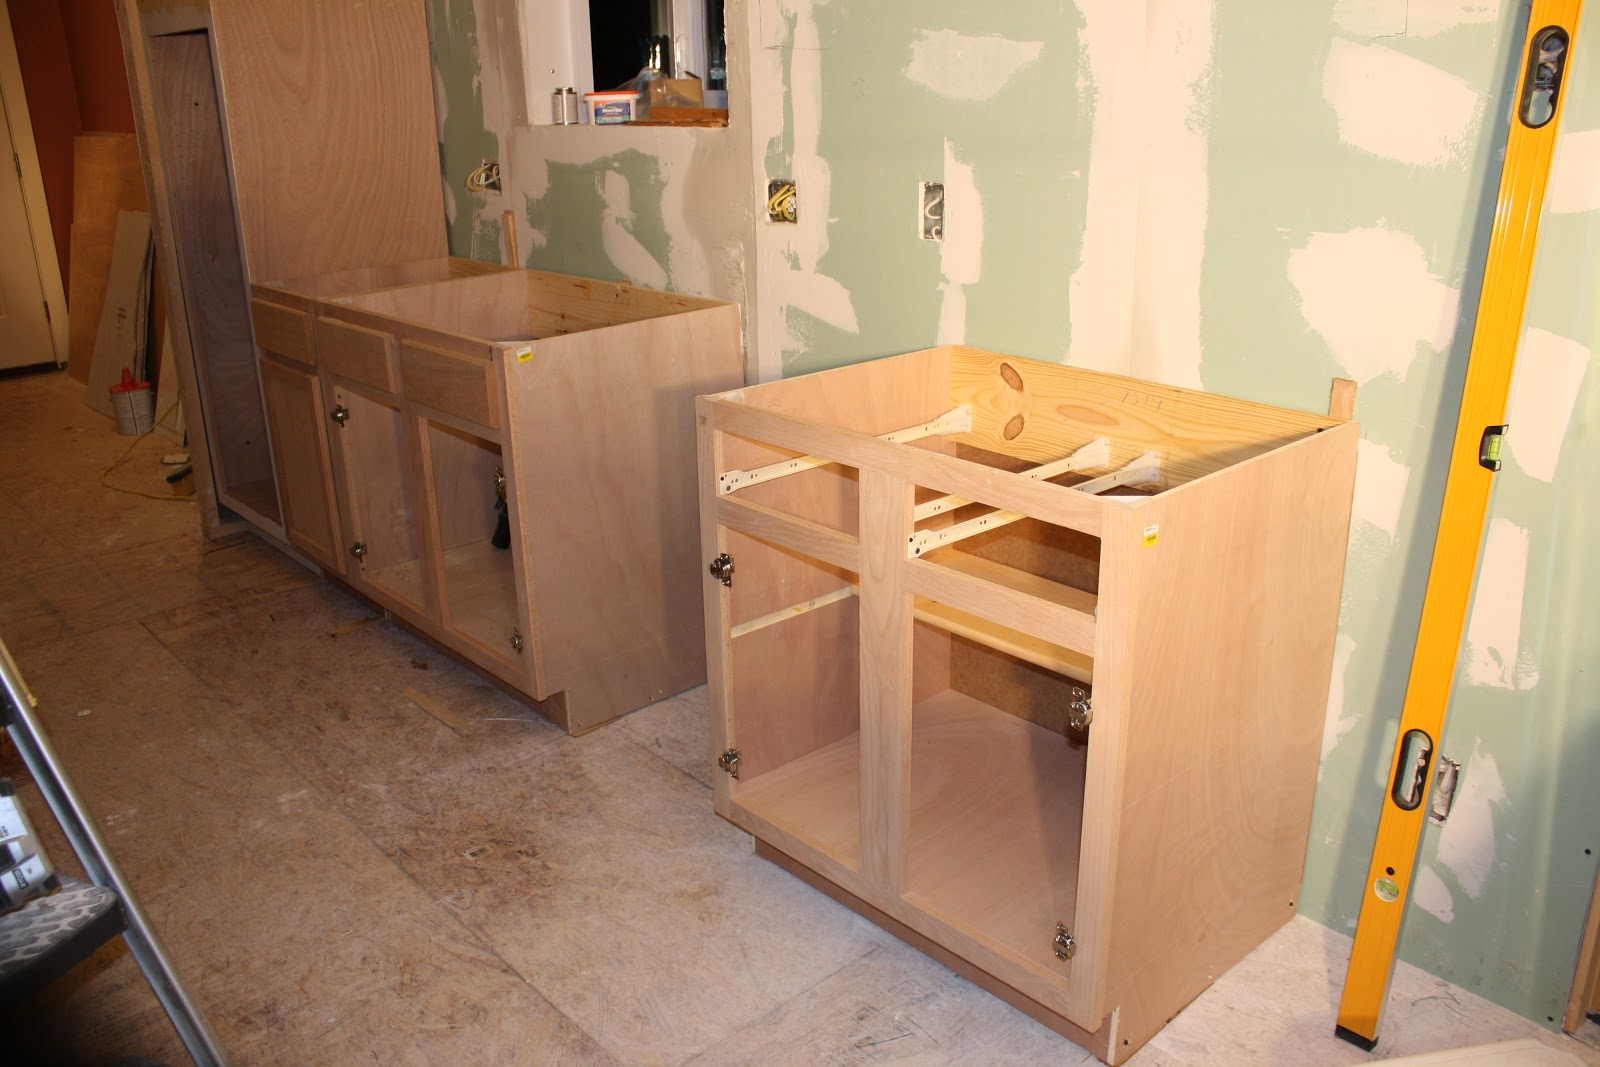 Plywood Cabinet Doors Doors Without The Plywood